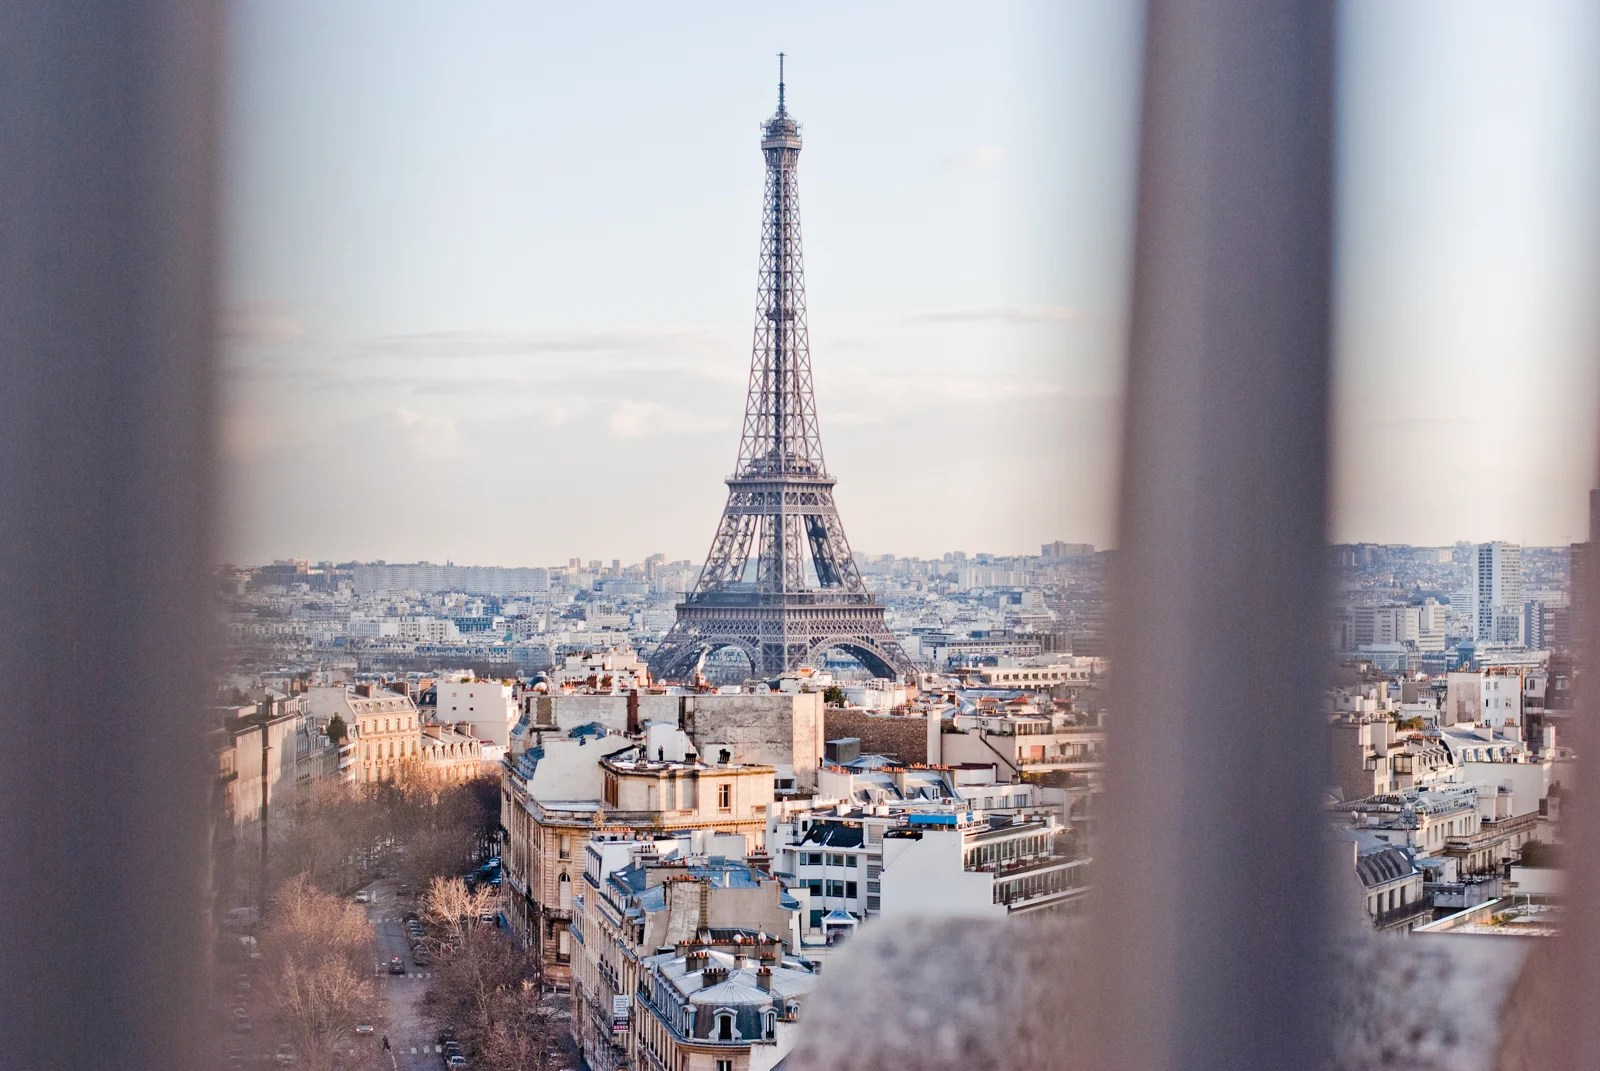 Second Cities: The best destinations to add onto a trip to Paris